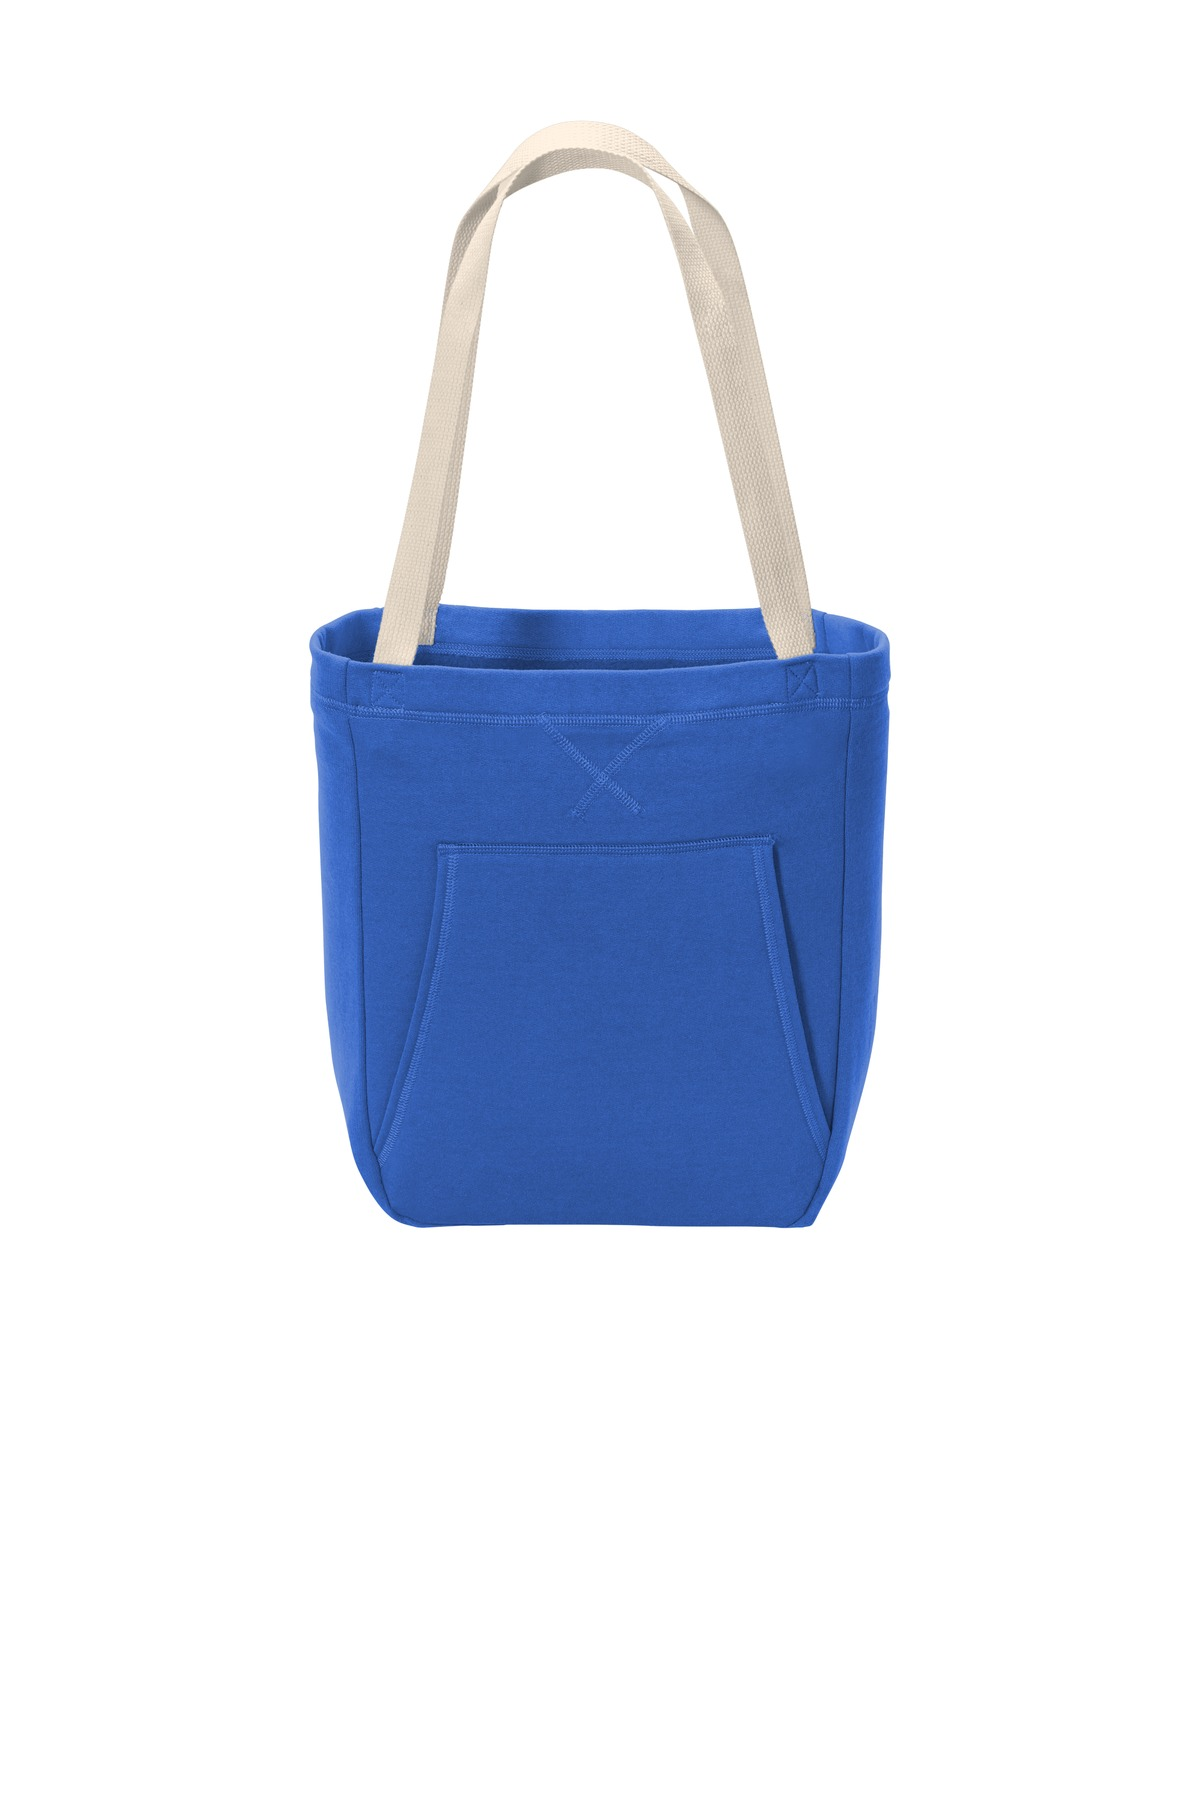 Port & Company  ®  Core Fleece Sweatshirt Tote BG415 - Royal